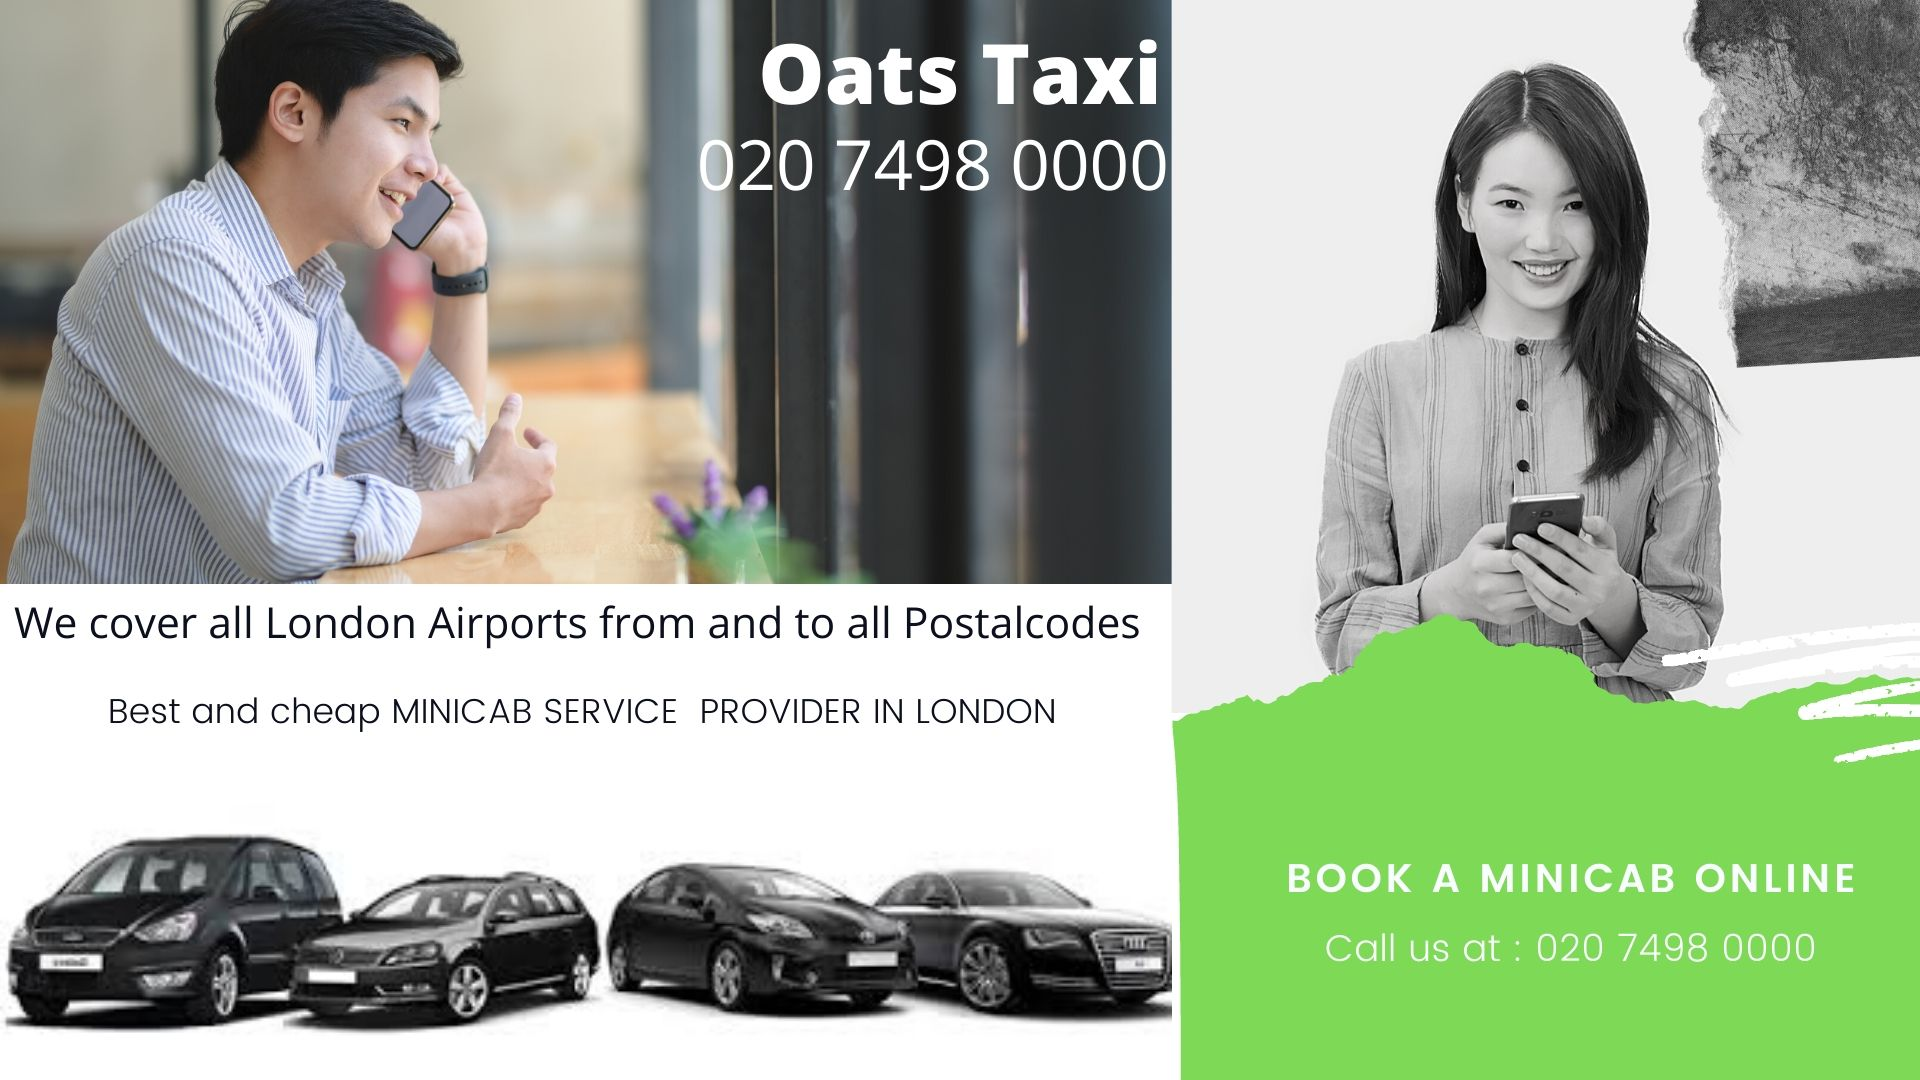 Nearest Minicab Office in New Malden | Minicab Gatwick Airport | Call now : 02074980000